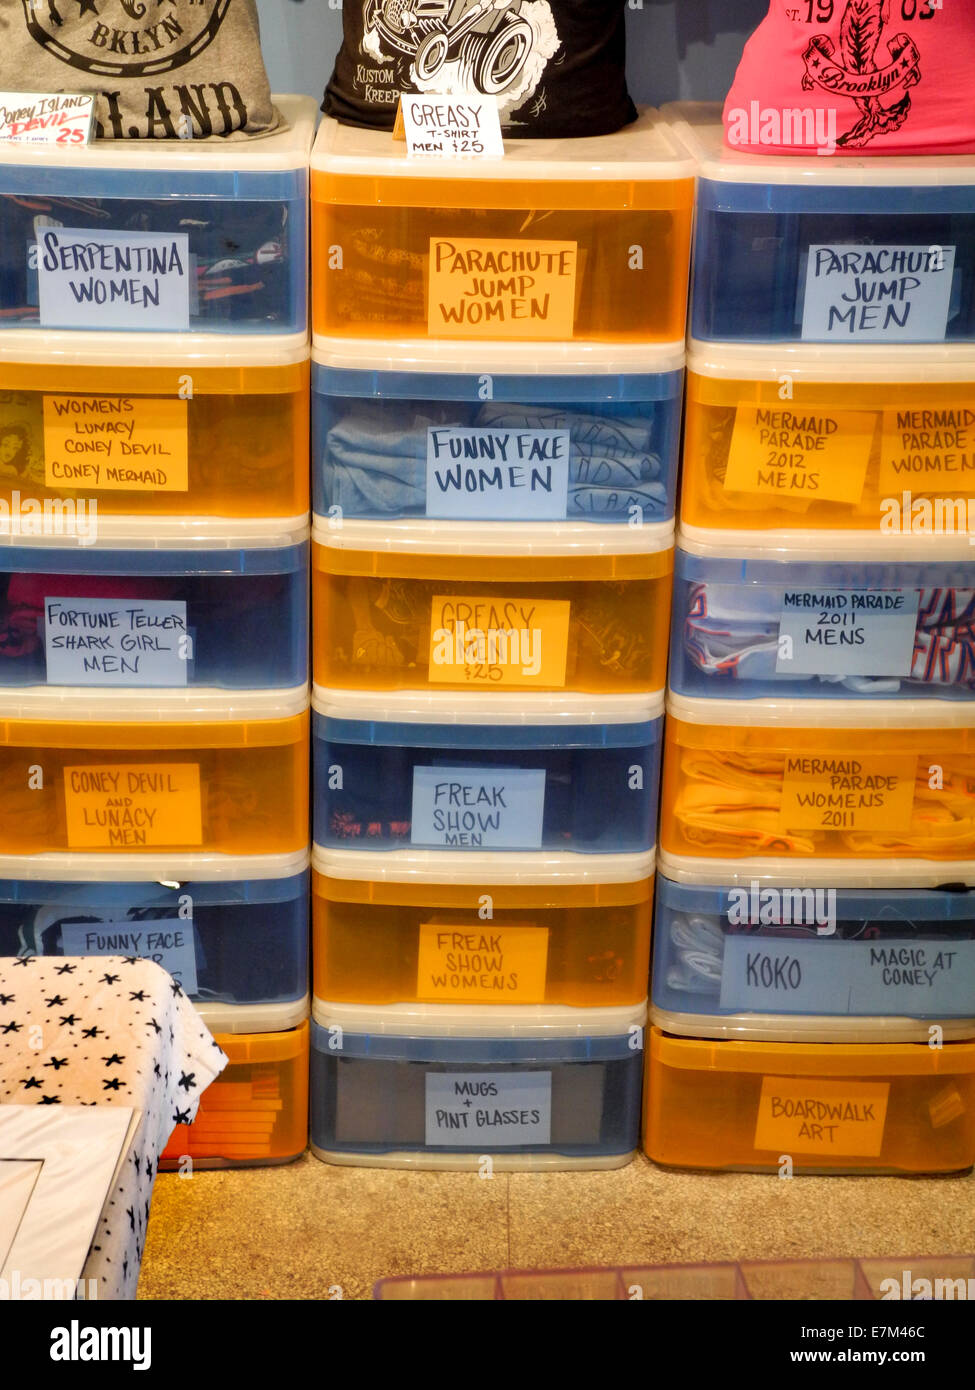 Charmant The Humorous Names Of Art Work On T Shirt Storage  Boxes At A Coney E7M46C